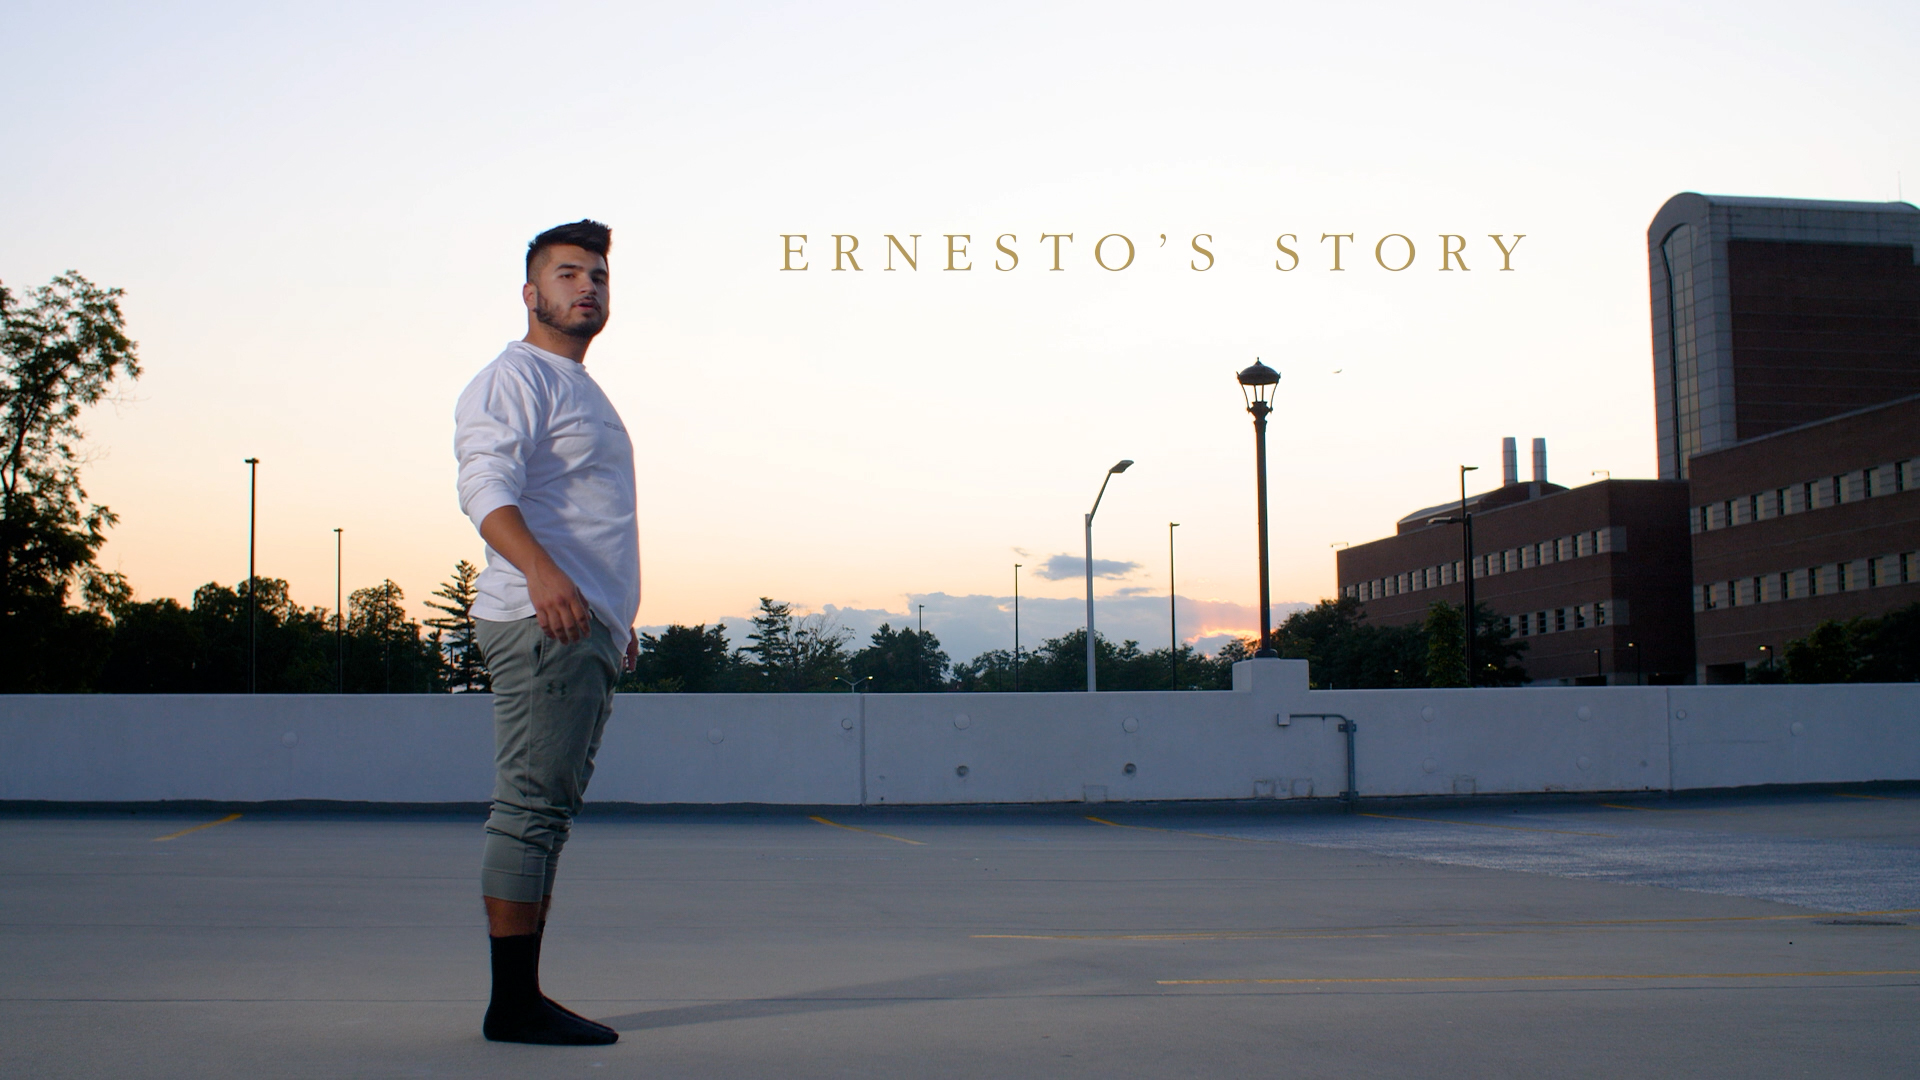 Ernesto Duran-Gutierrez posing for a photo outside on O U campus at sunset. Text on the image reads Ernesto's story.